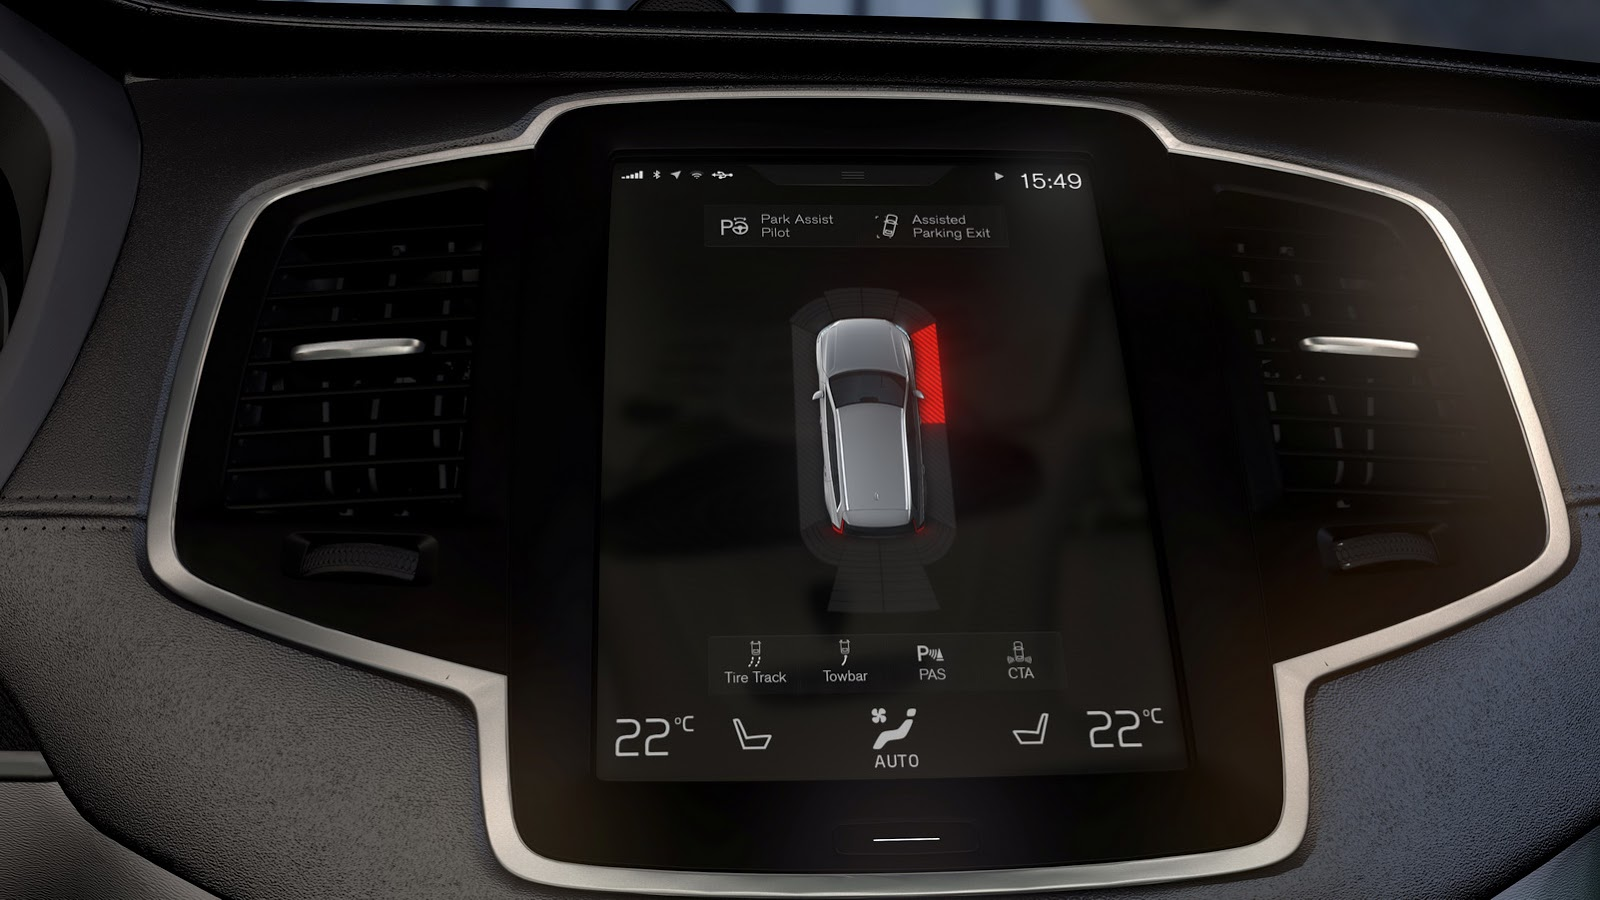 New Volvo Xc90 S Parking Assist Tricks Revealed